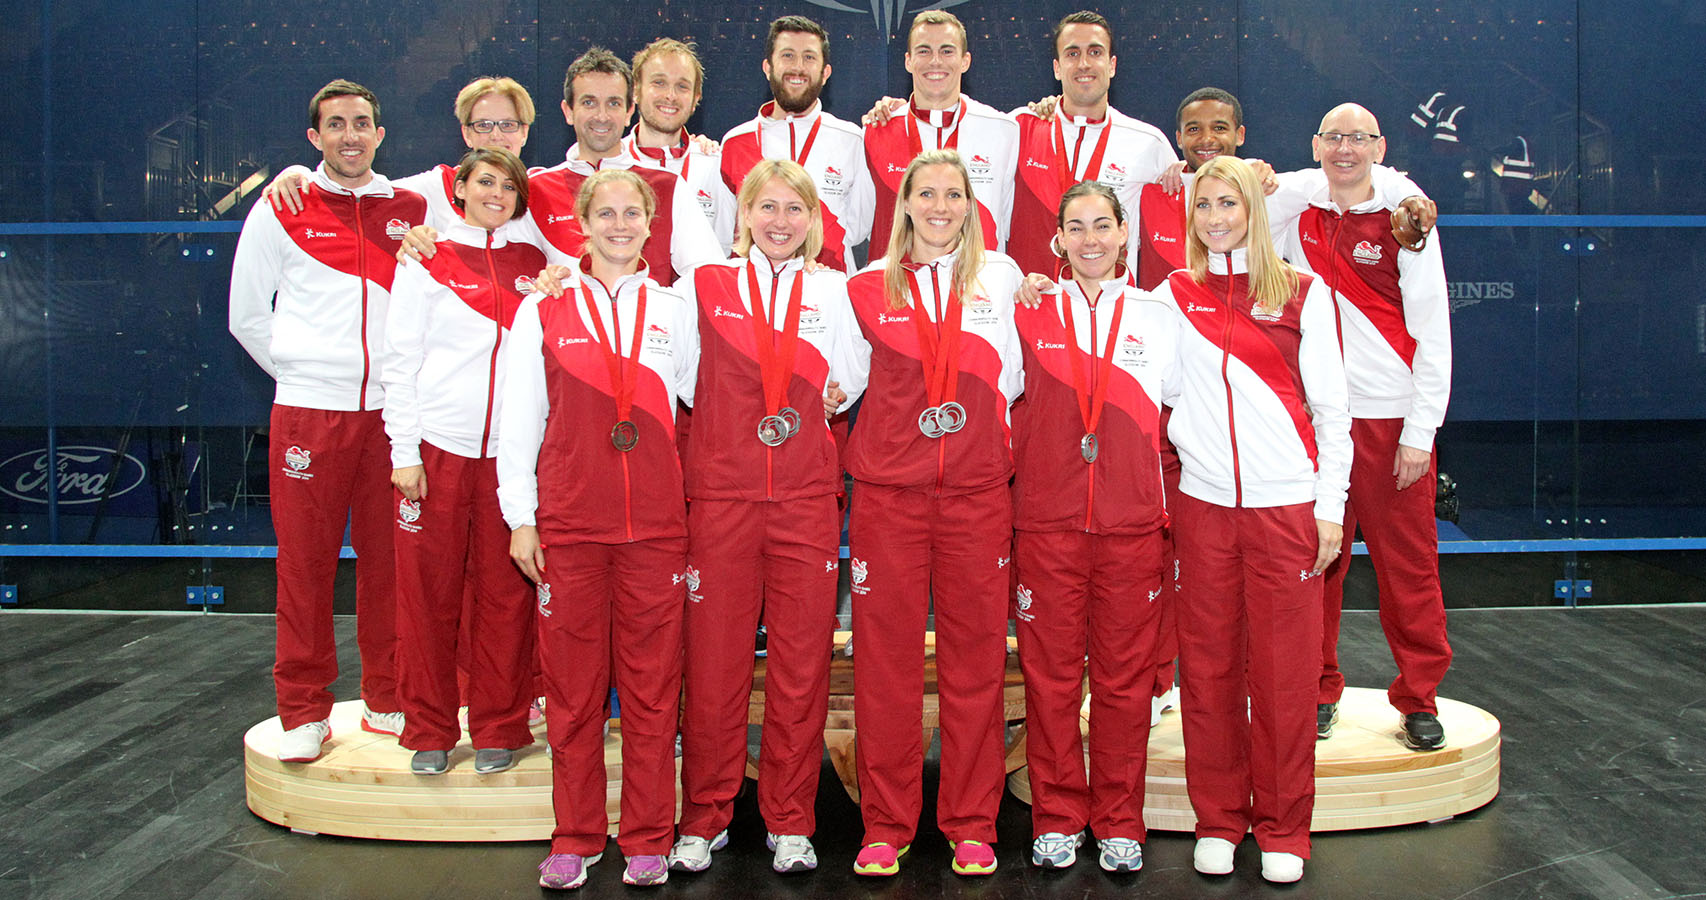 Team England at the 2014 Commonwealth Games in Glasgow